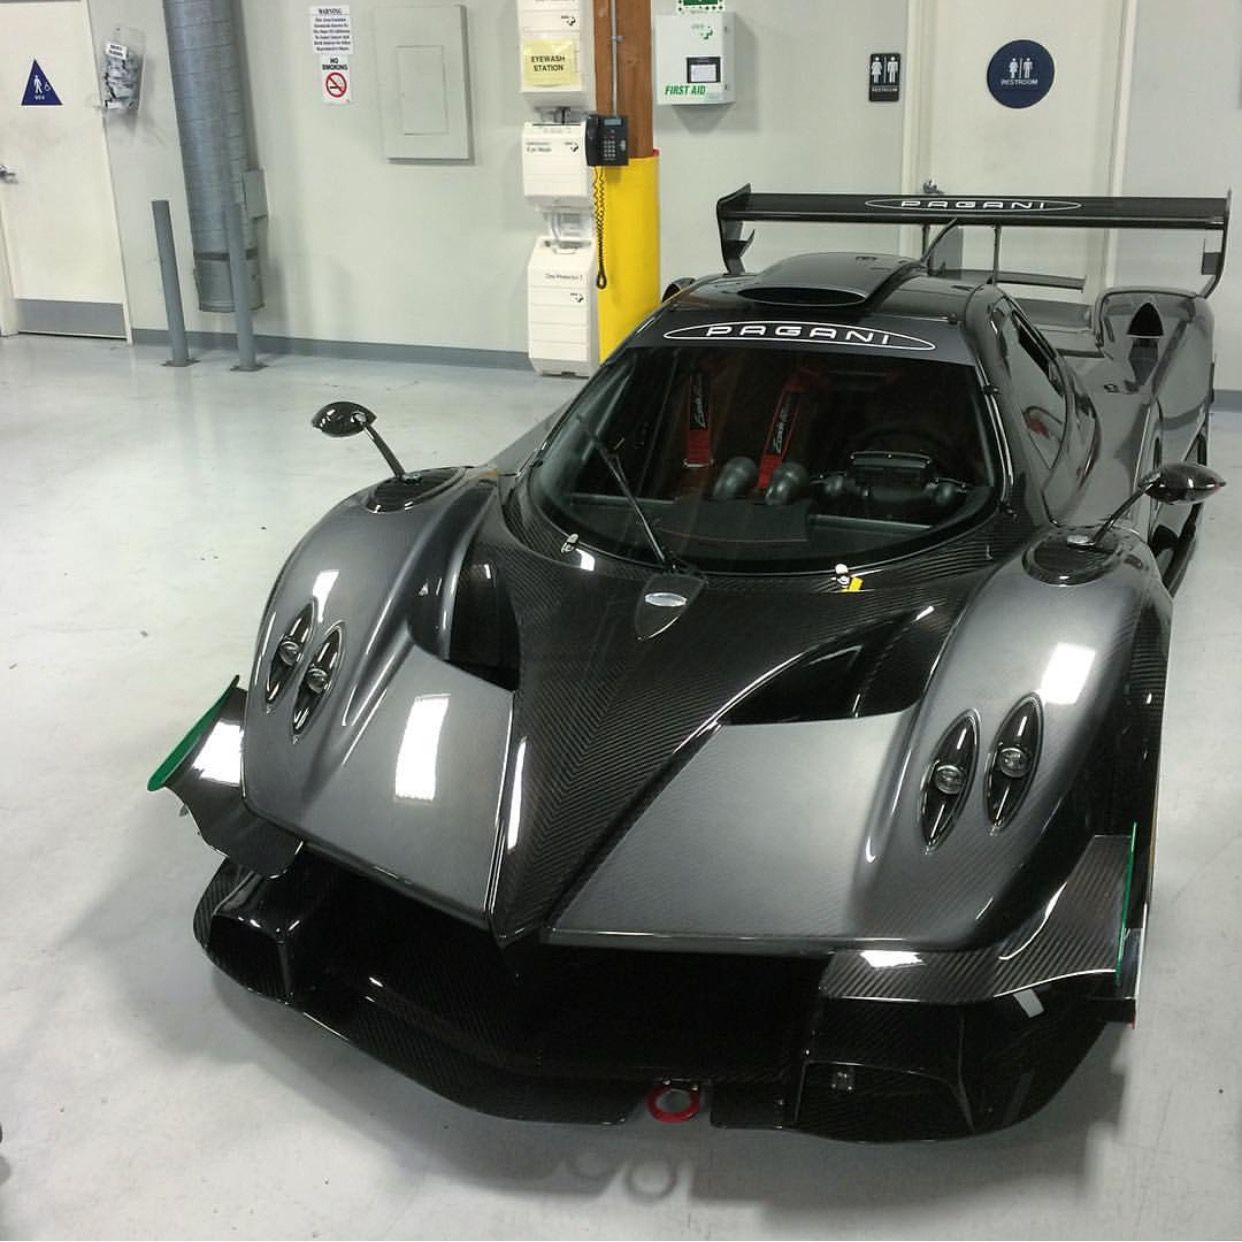 Pagani Zonda R Painted In Dark Gray Made Out Of Exposed